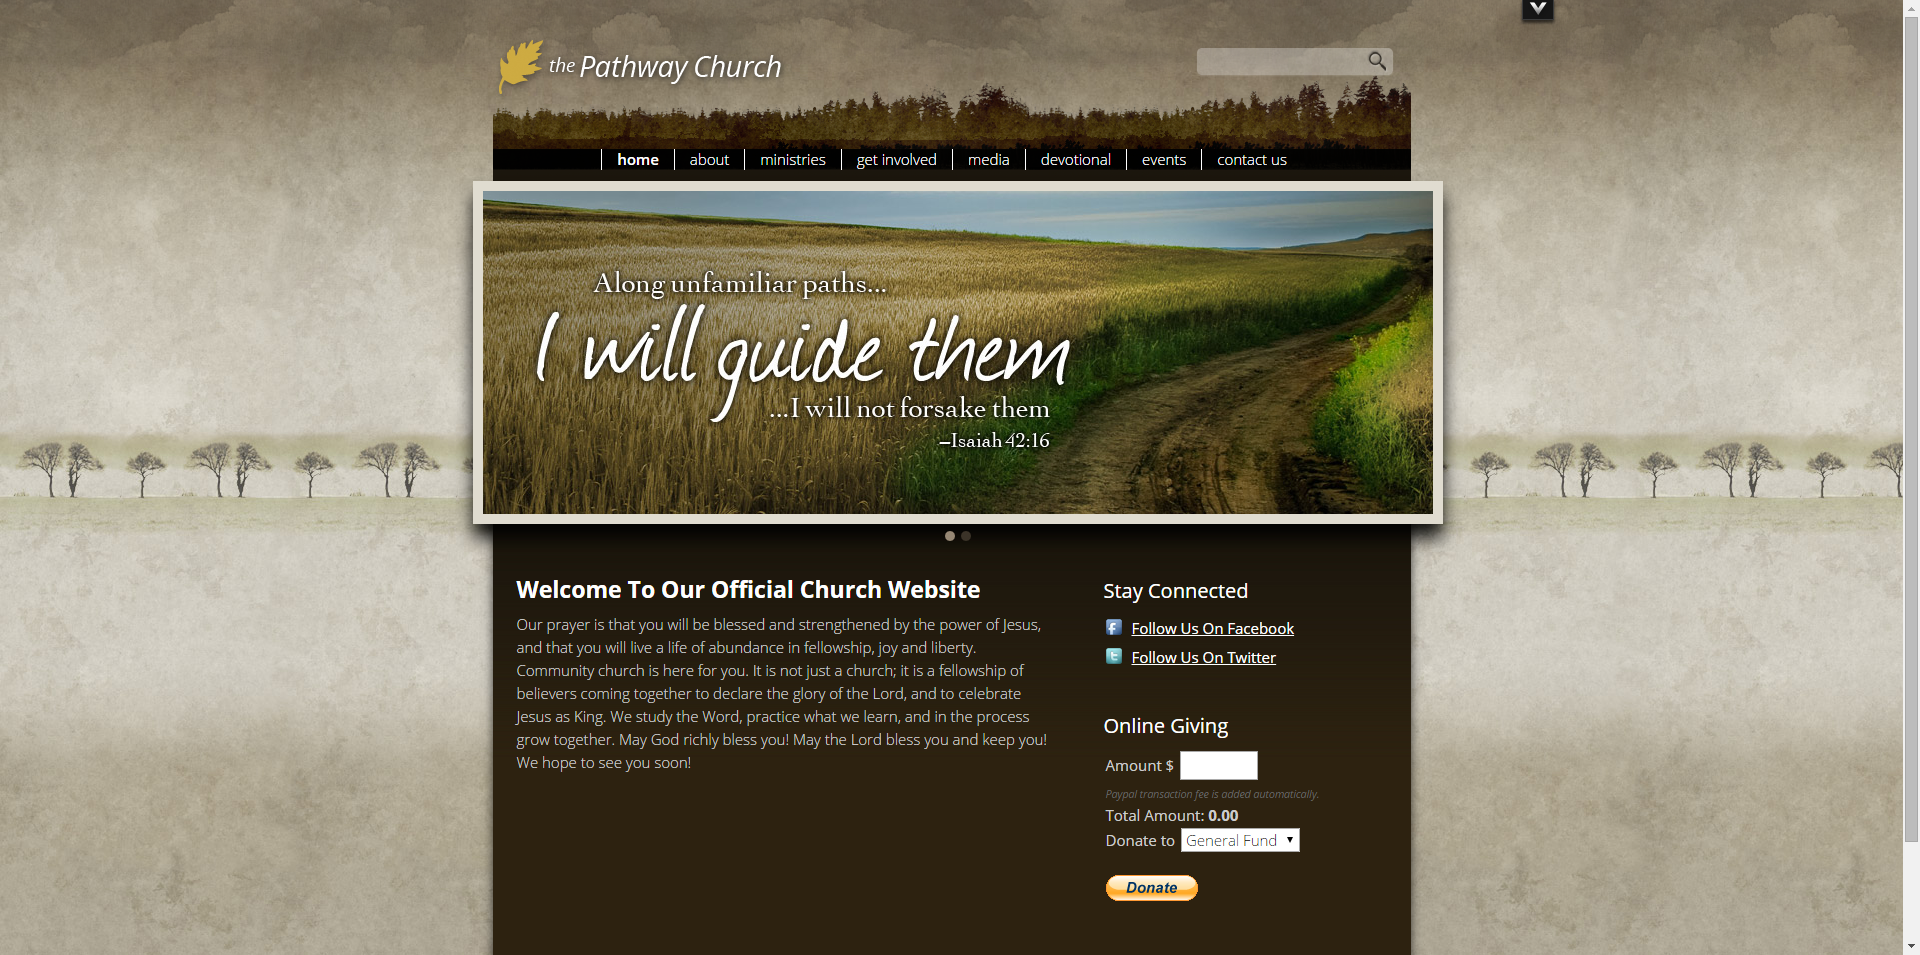 Rustic Backgrounds For Websites Rustic Woods Church Website